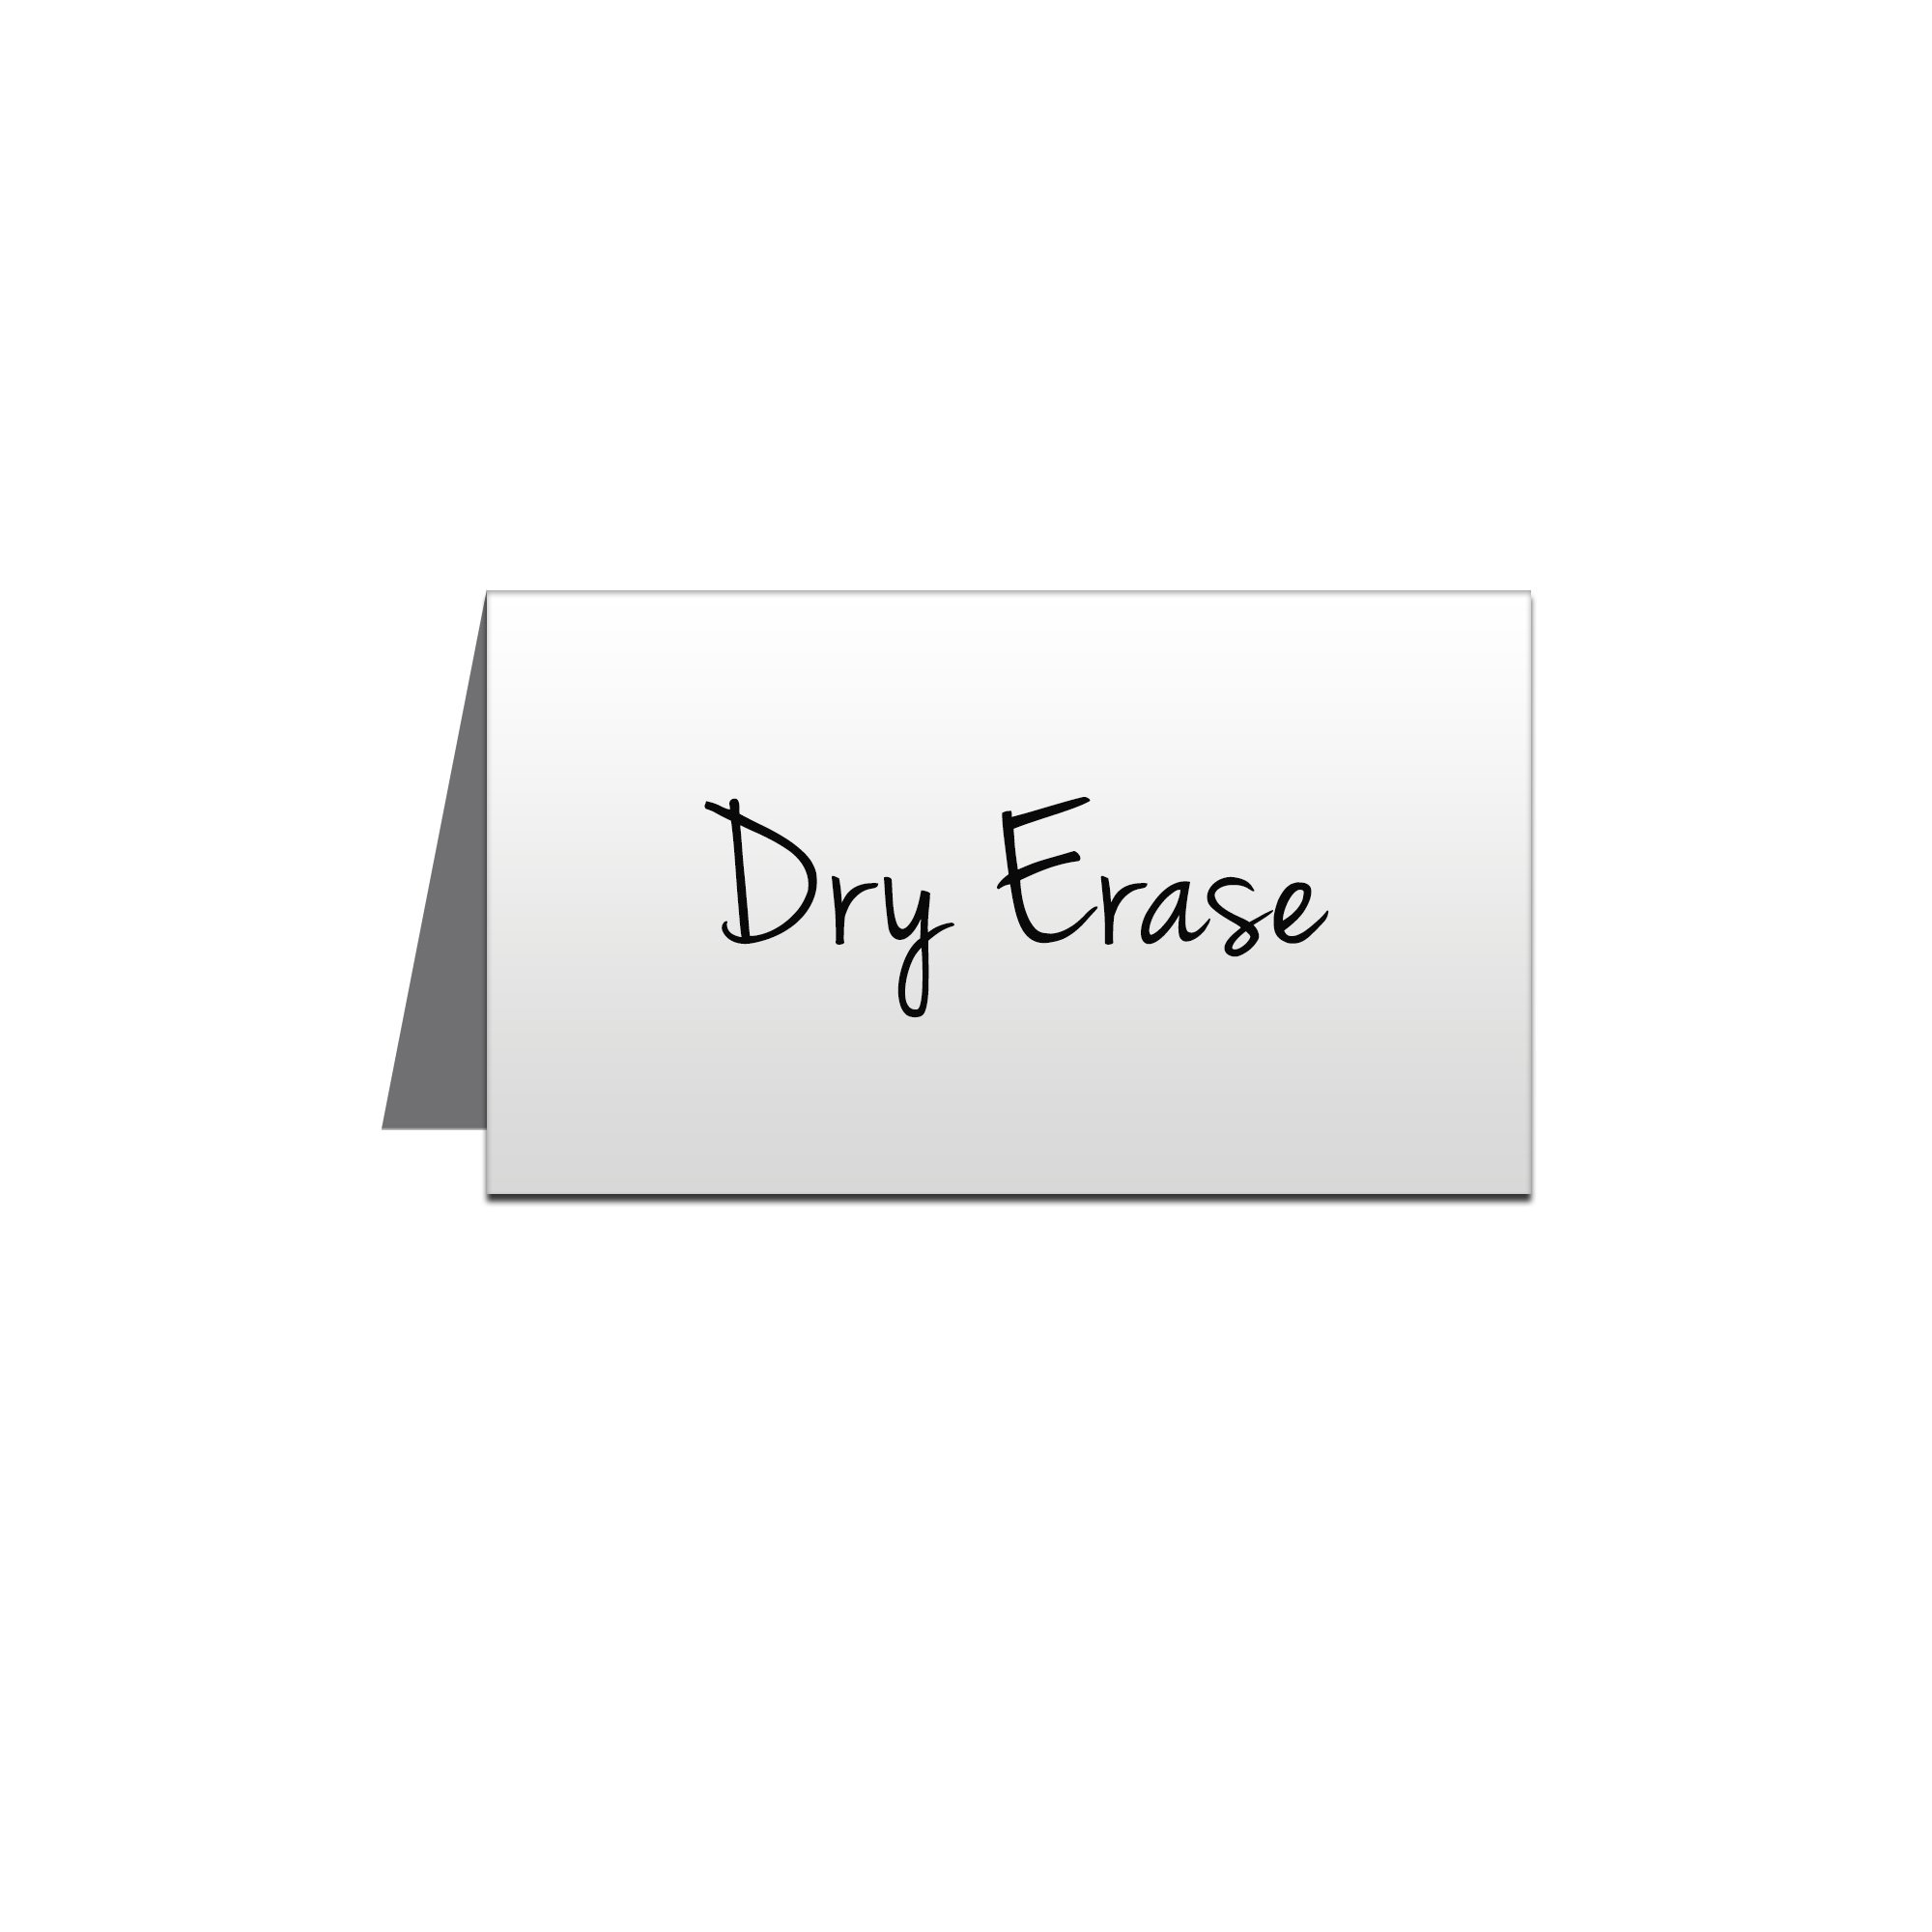 5 x 3 Write-on Metal Place Cards - Pack of 5 by NapTags